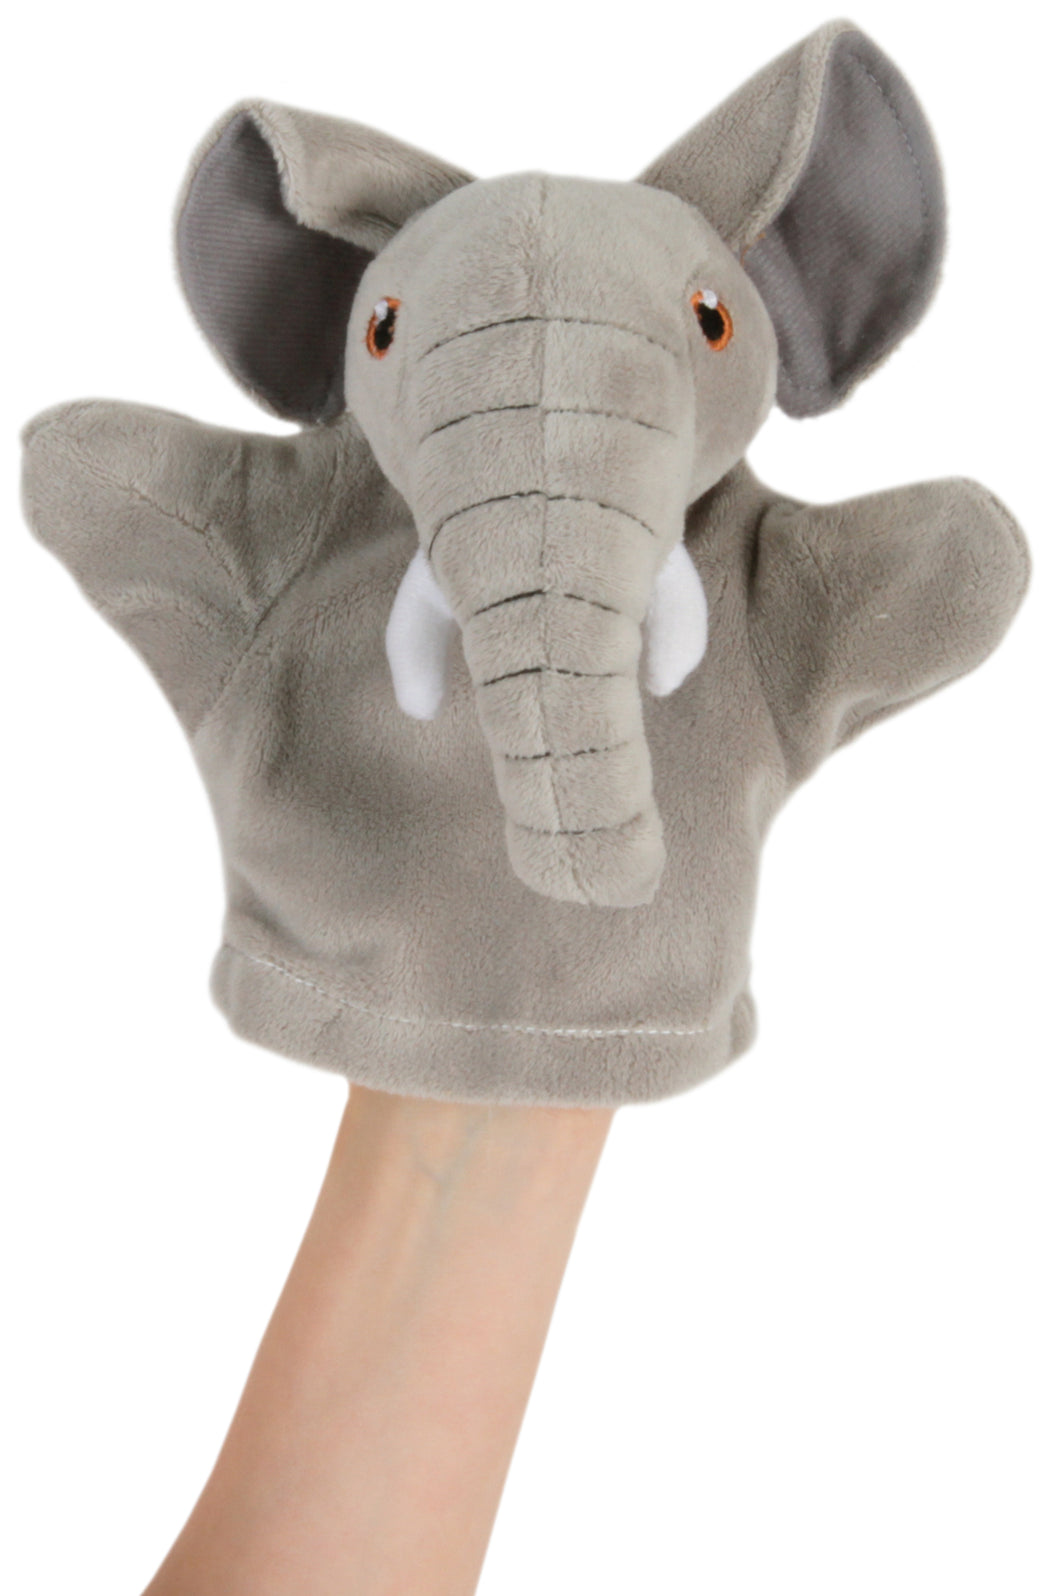 P415-PC003807-marionnette-Eléphant-The-Puppet-Company-My-First-Puppets